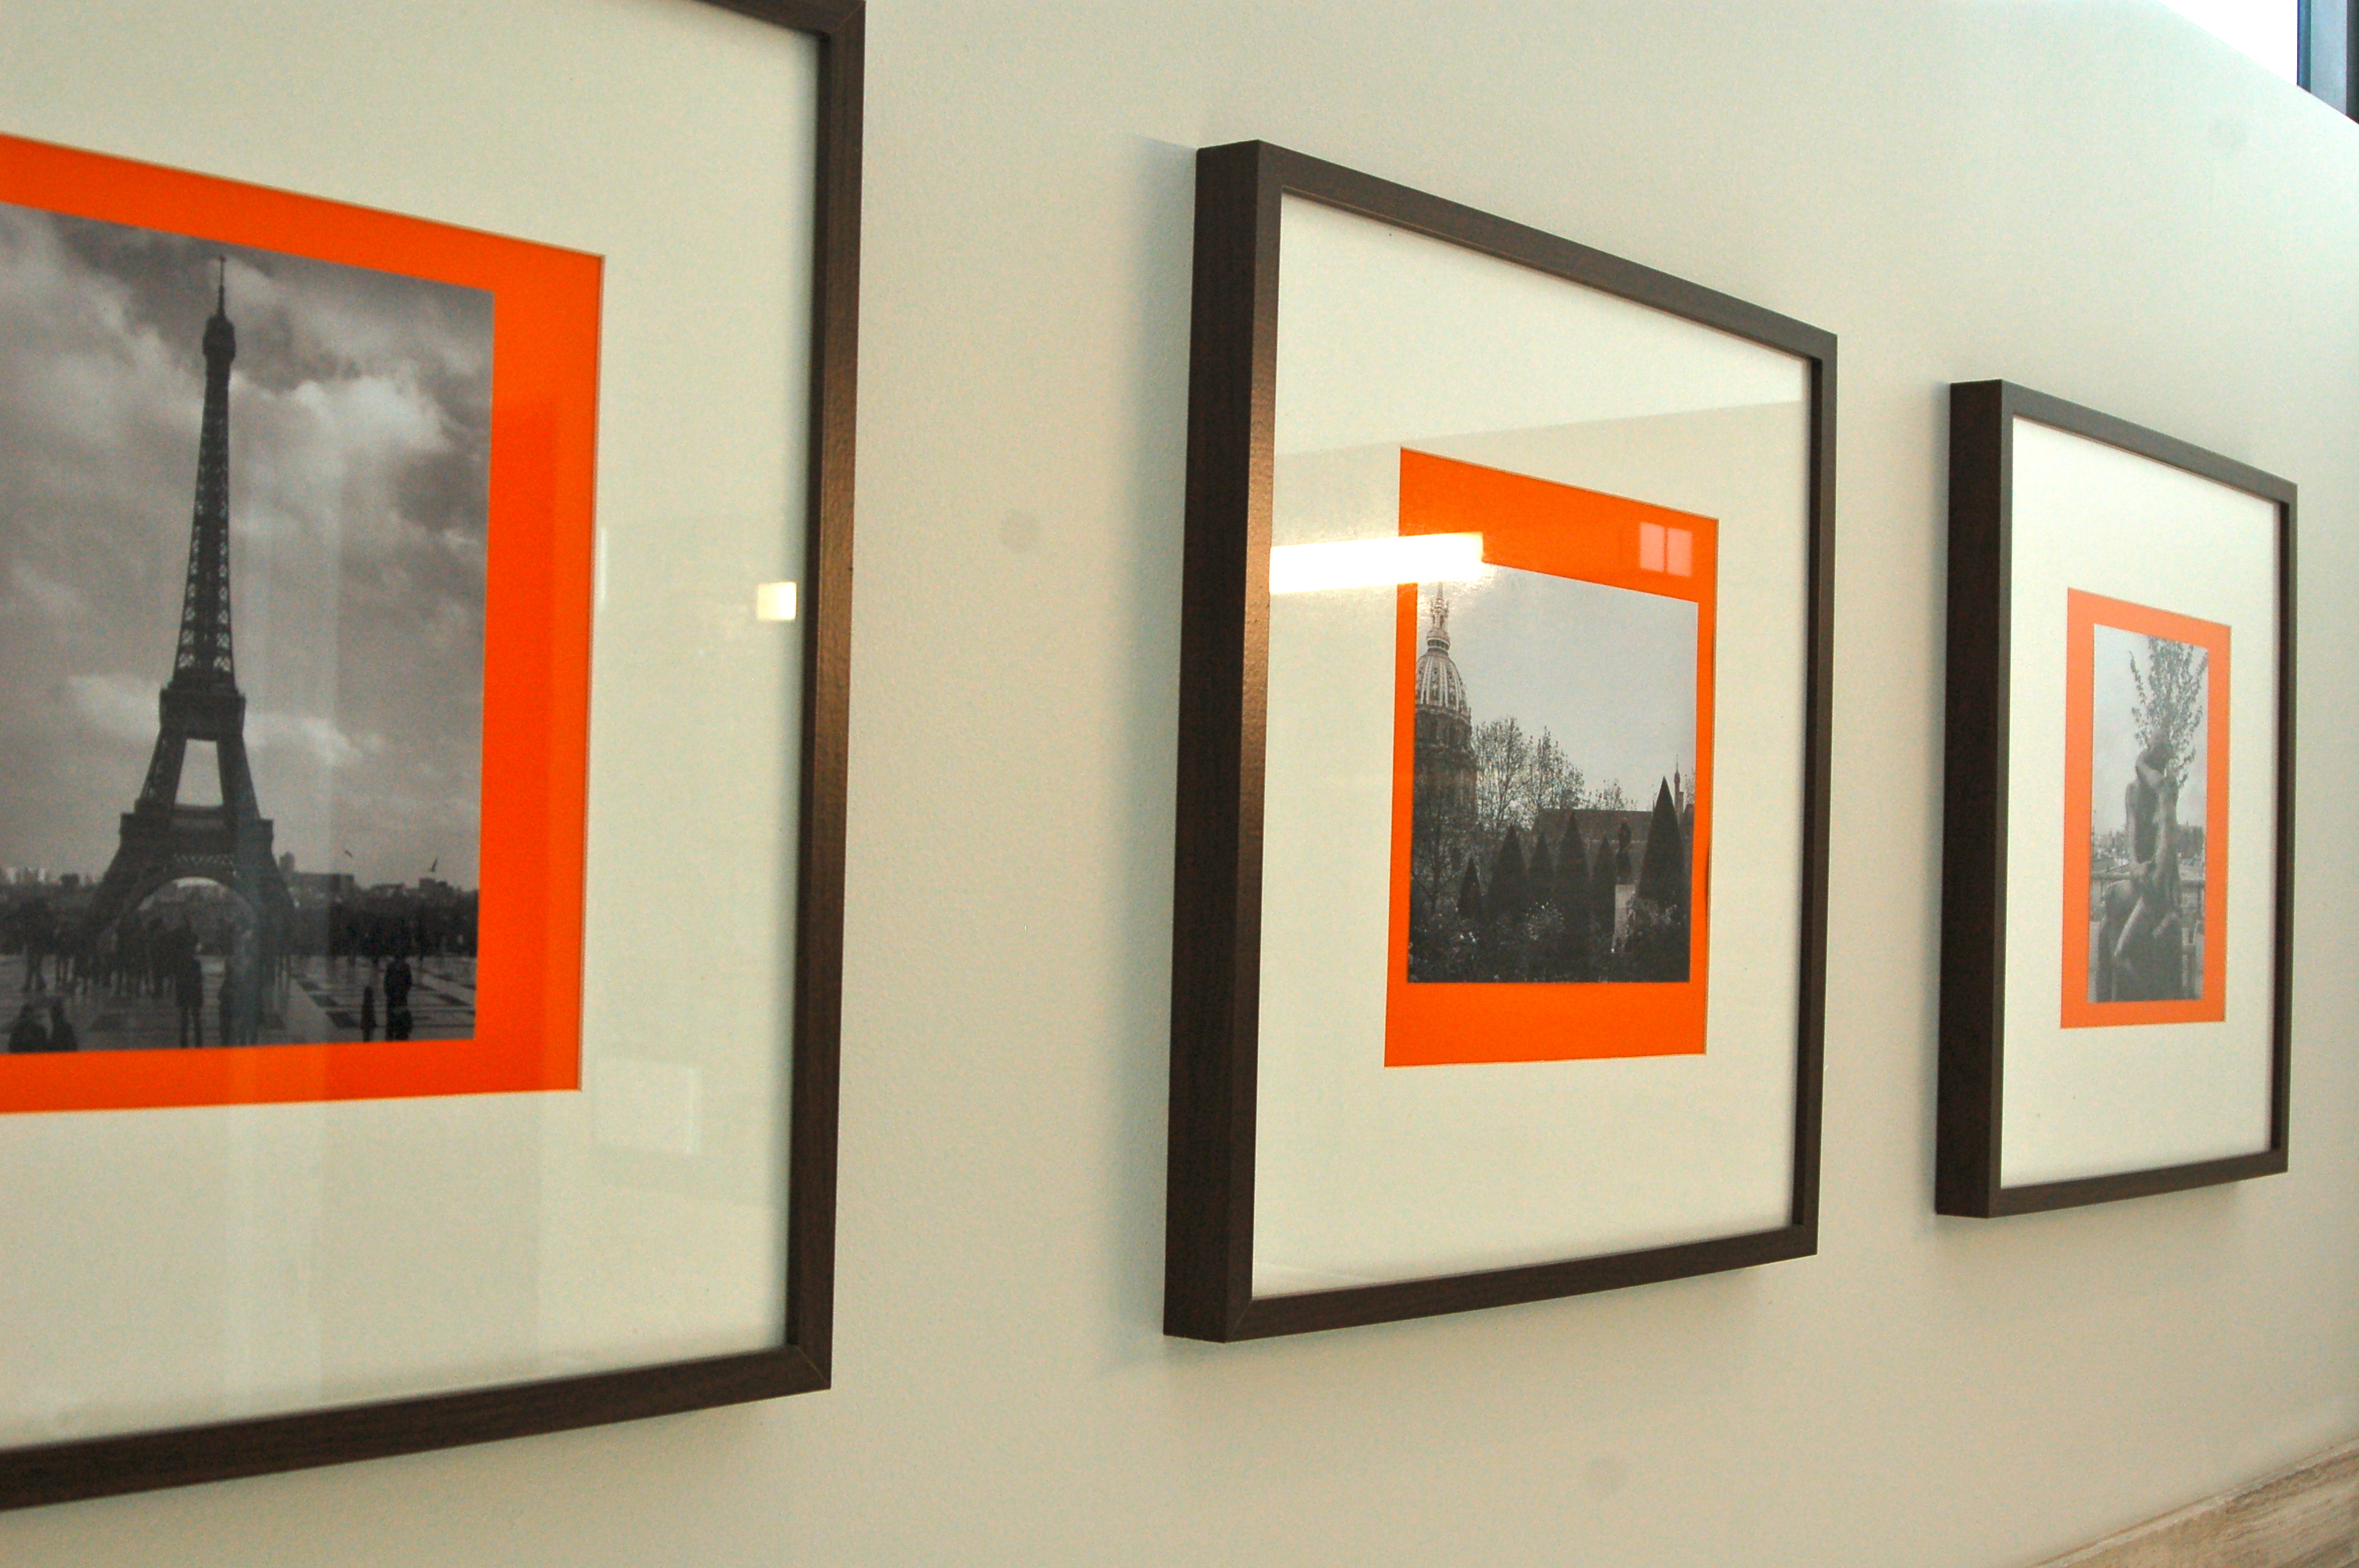 How To: Add Color to Wall Art & Photography (Part I)